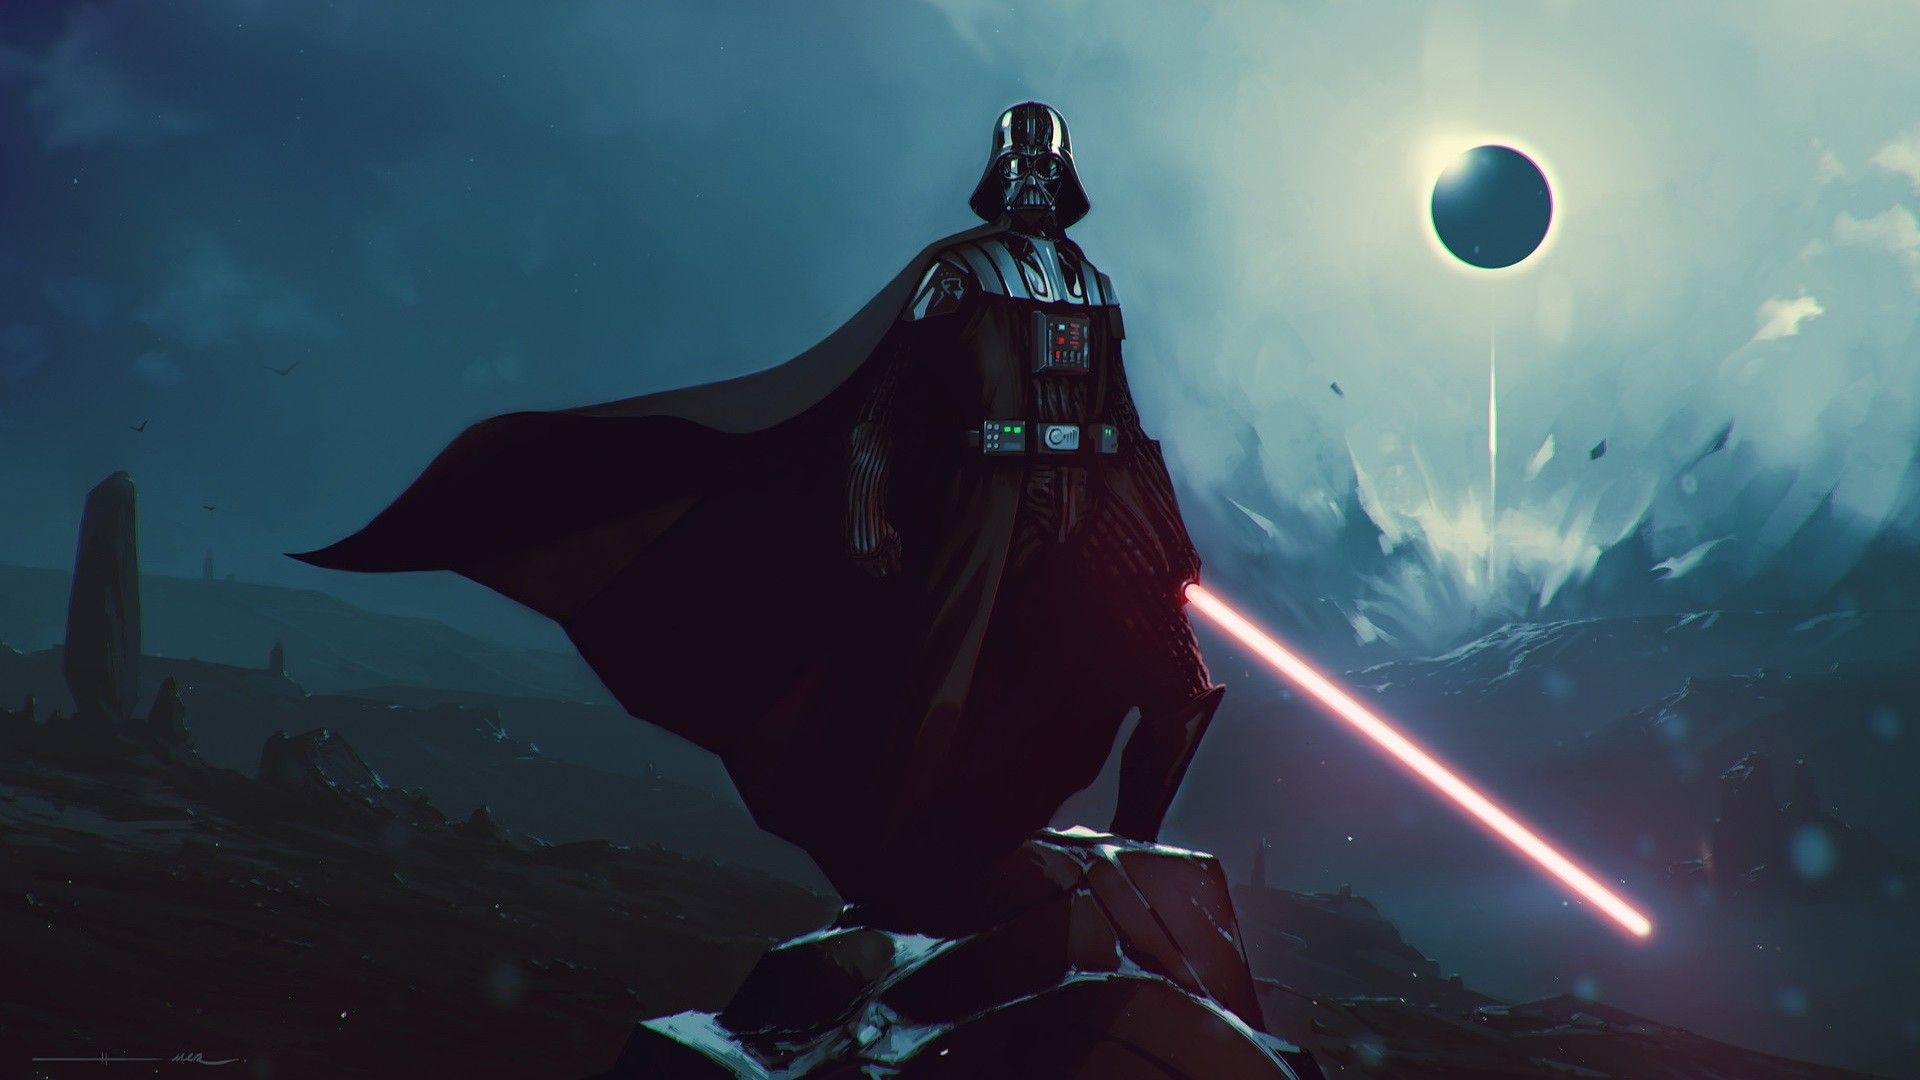 darth vader wallpaper for android